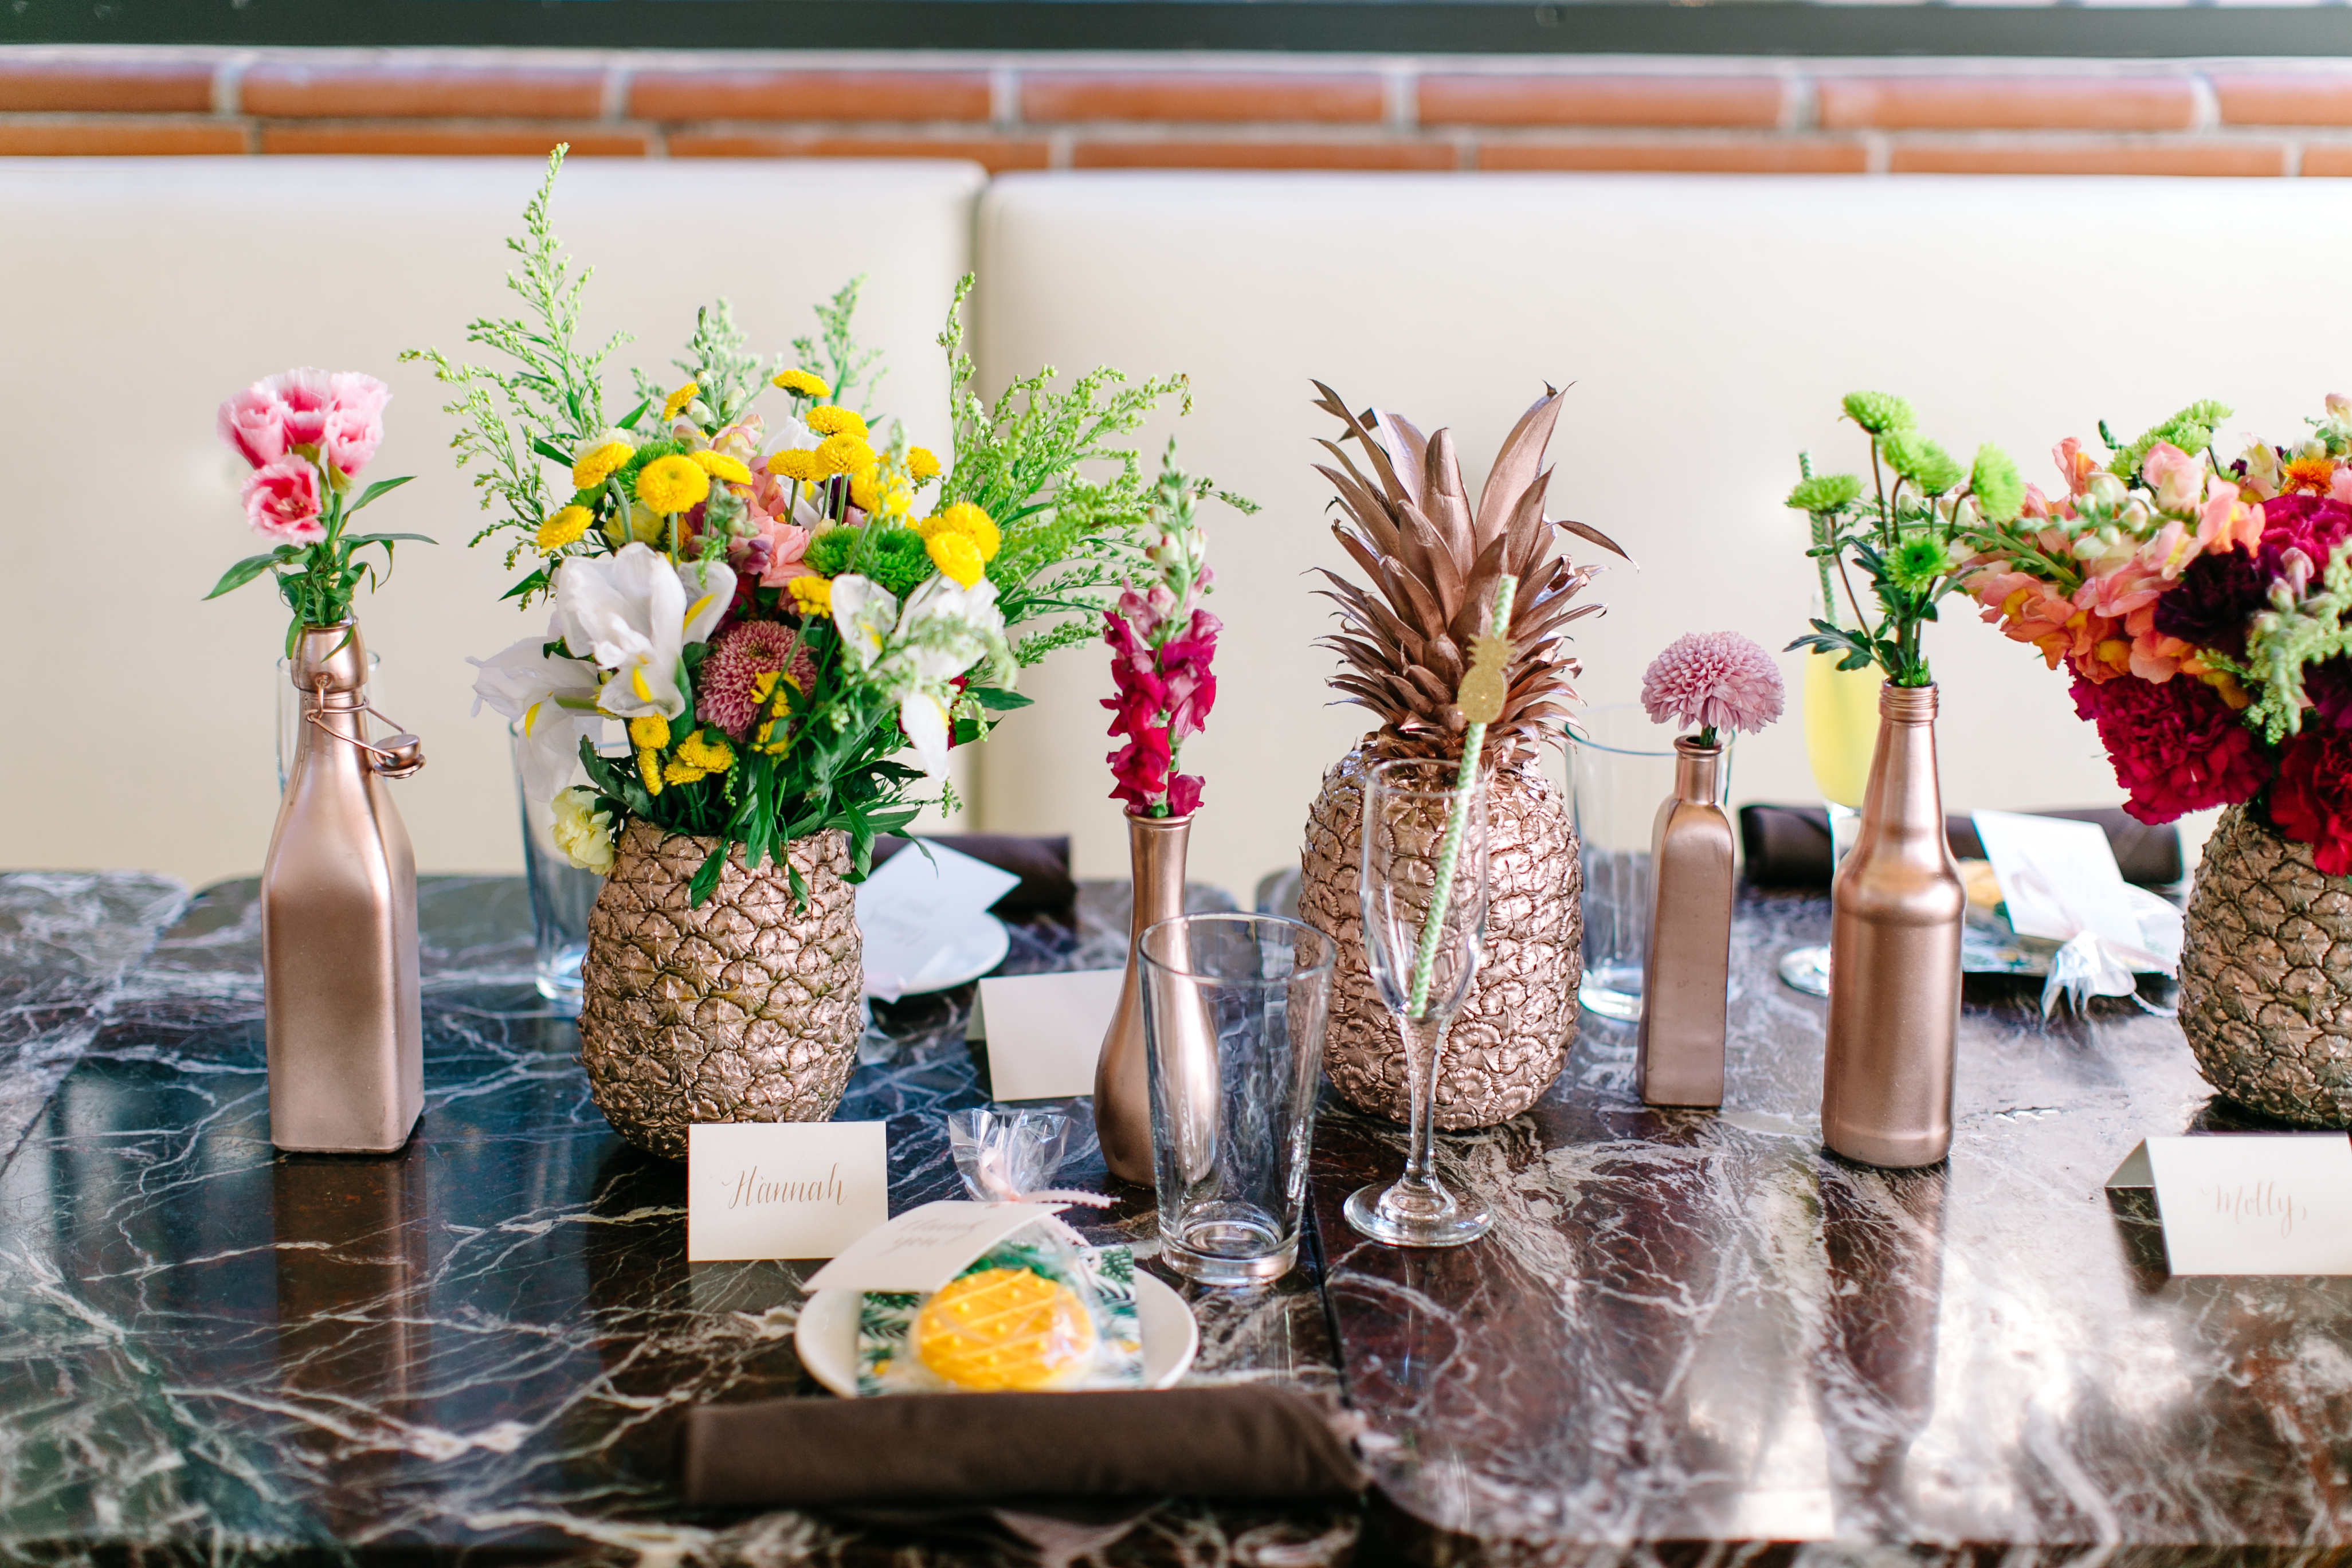 How to create a pineapple centerpiece